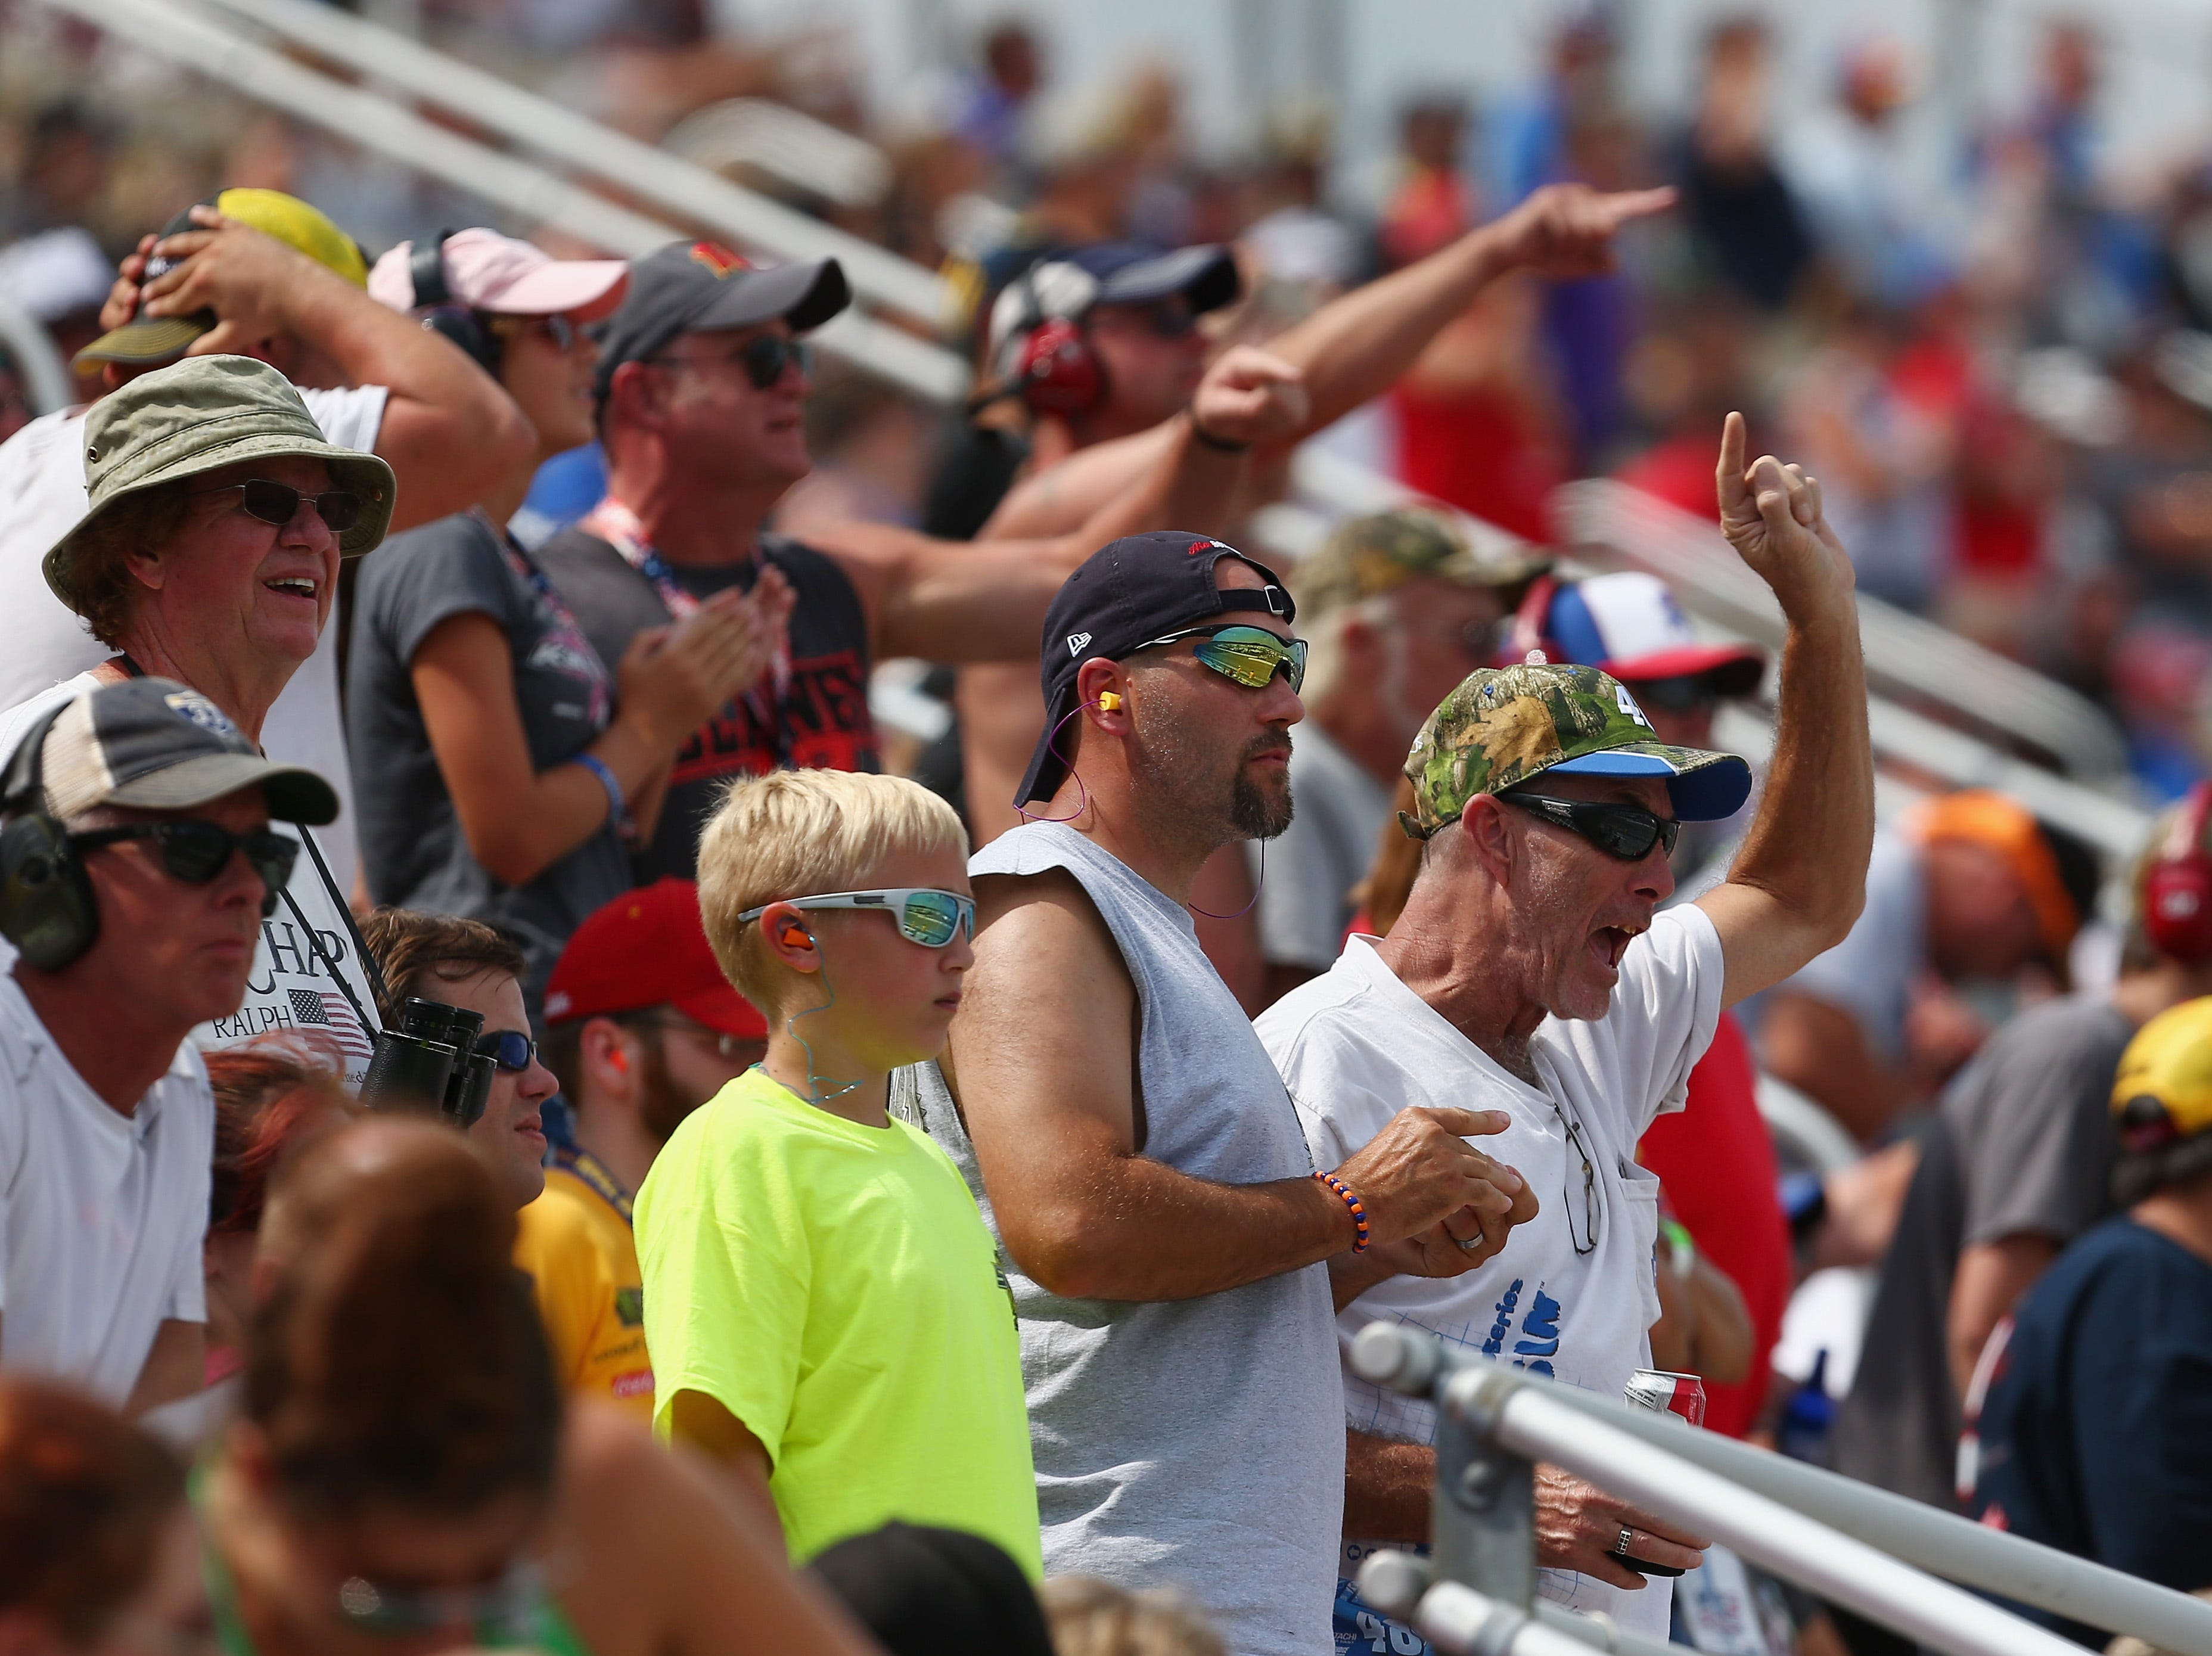 Fans cheer during the Monster Energy NASCAR Cup Series Consmers Energy 400 at Michigan International Speedway.